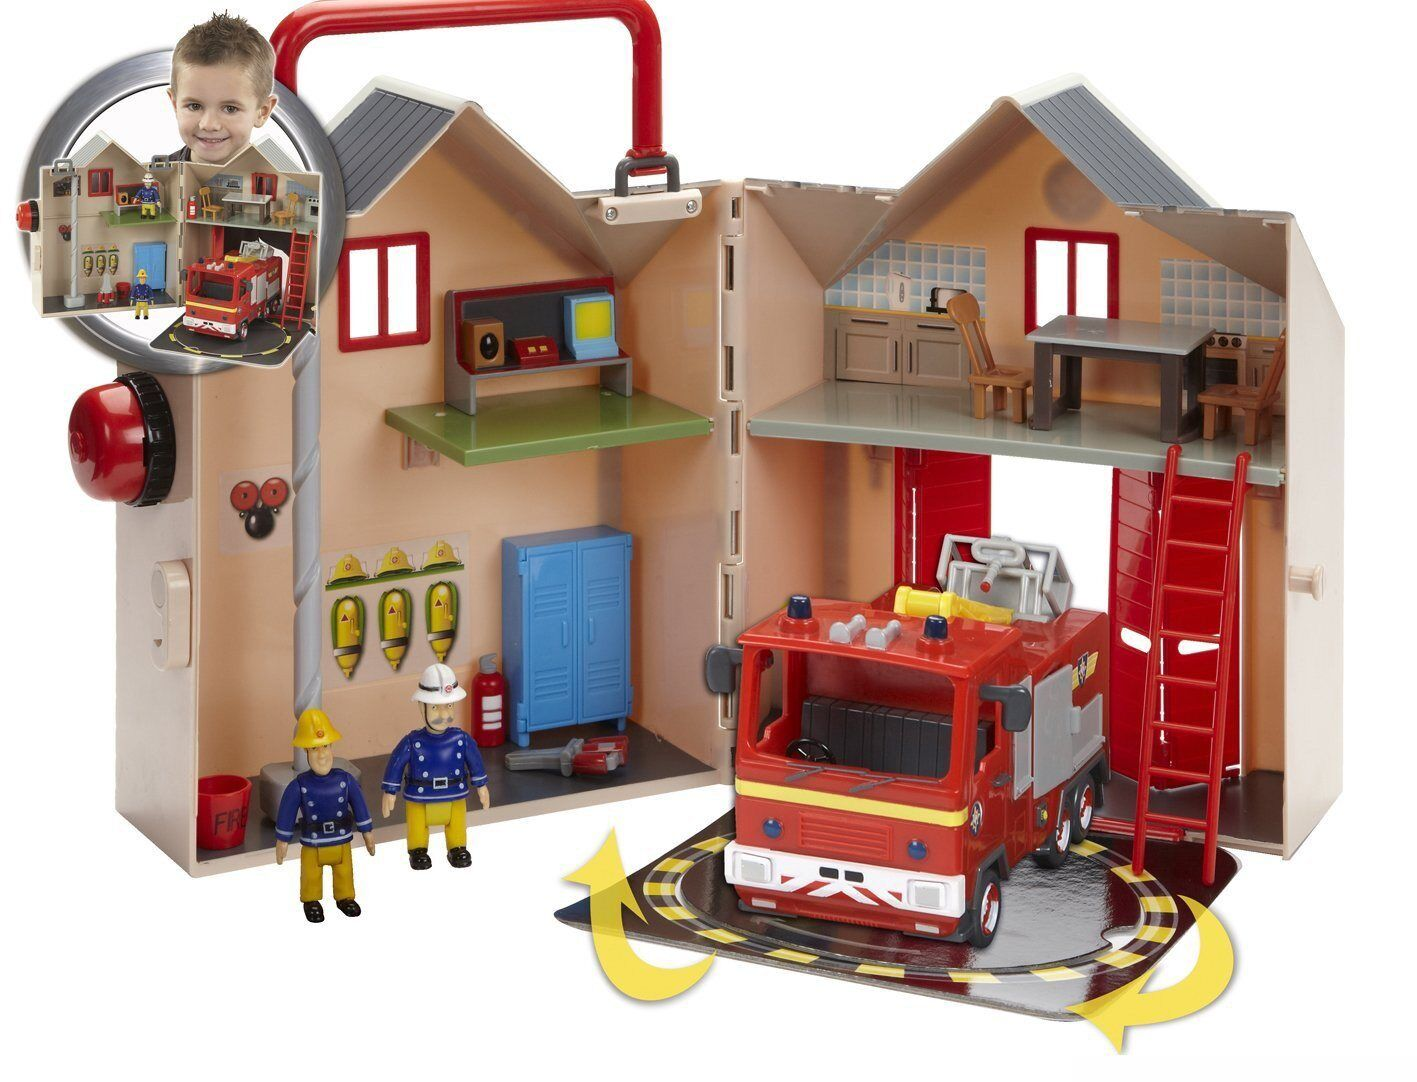 Fireman Sam Deluxe Fire Station Playset with Jupiter fire engine